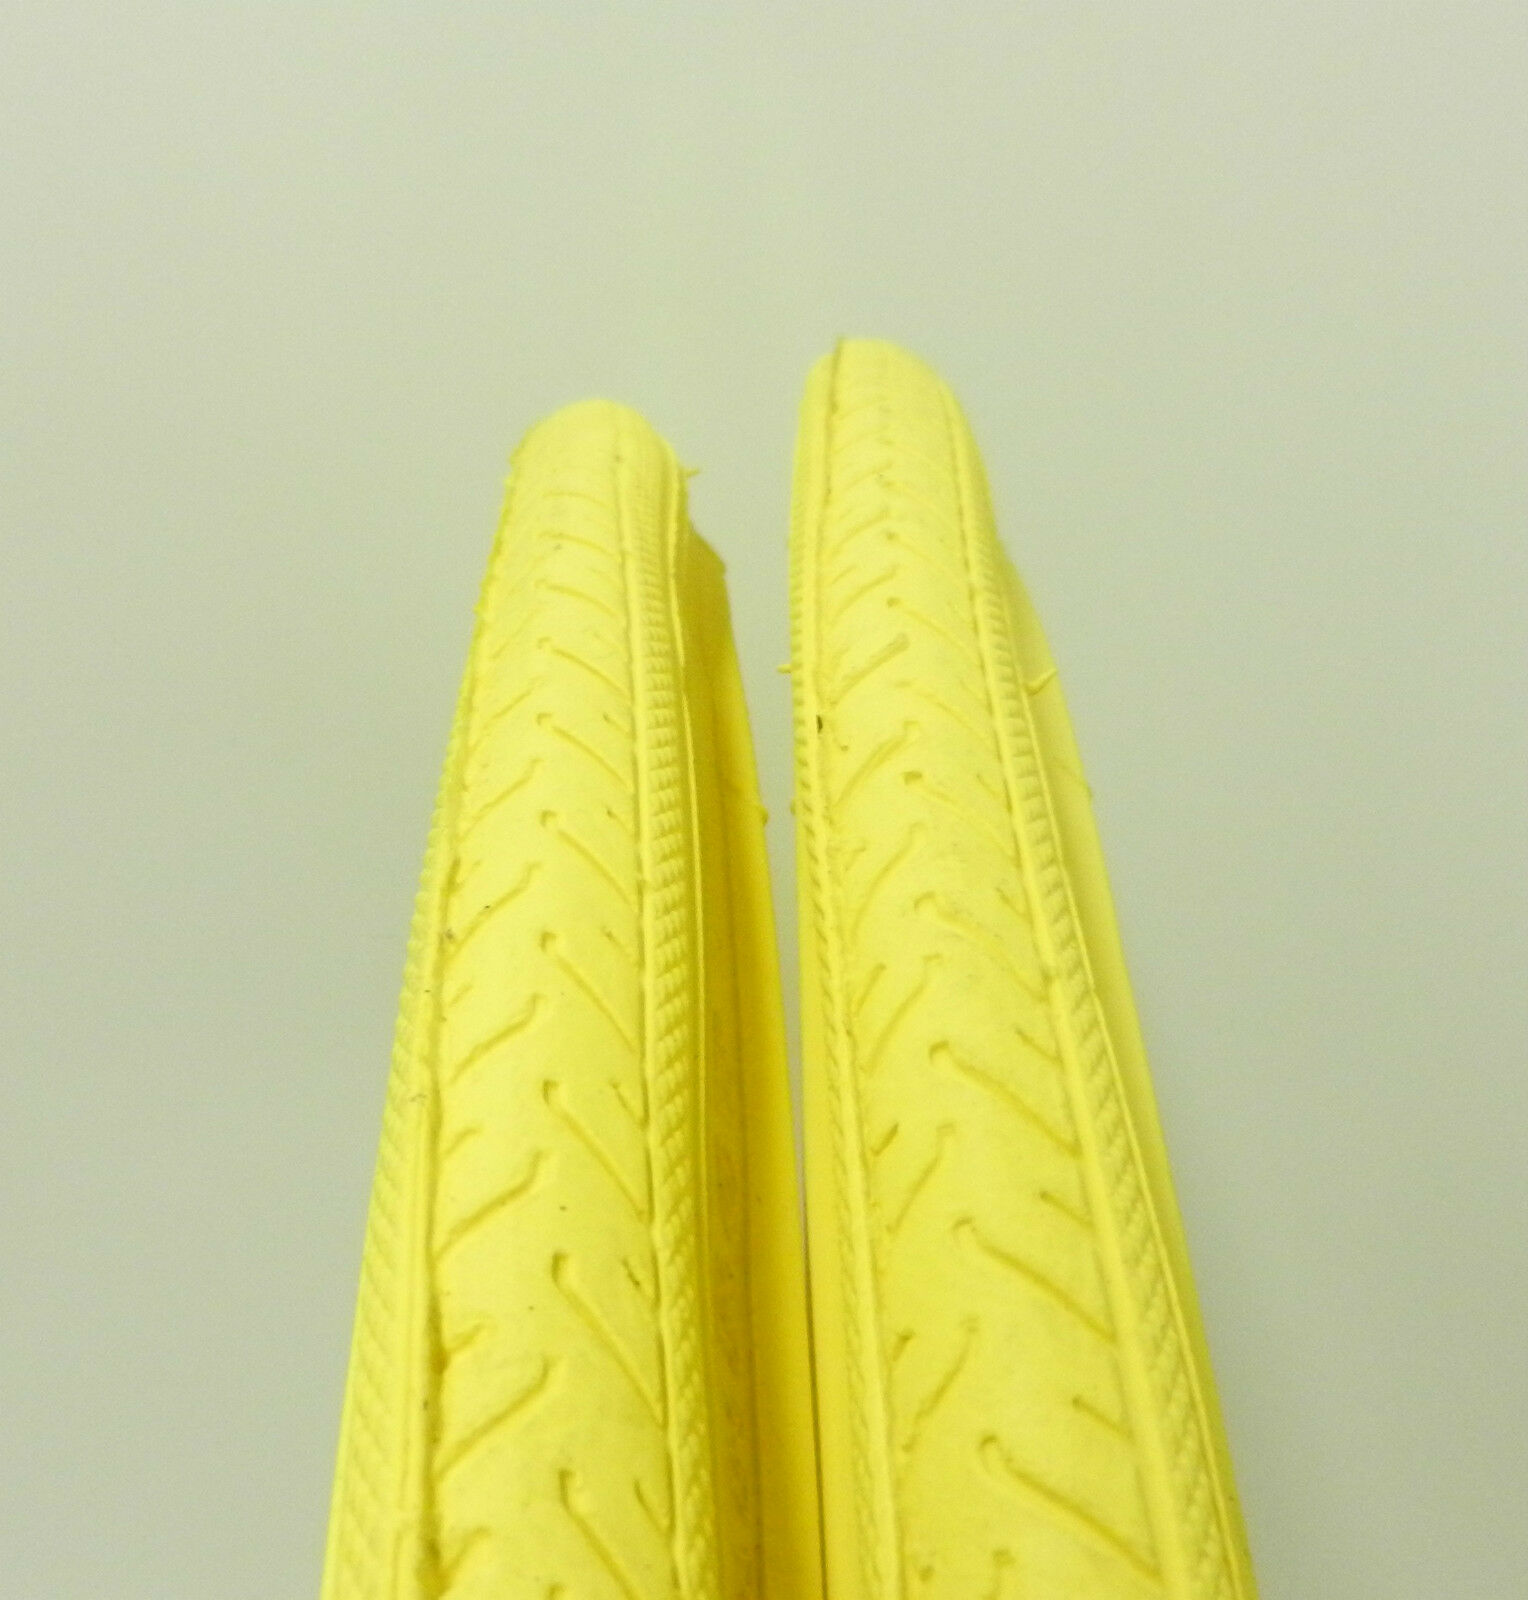 TWO NEW DURO 700 X 25C ALL YELLOW ROAD TIRES WITH TUBES ISO 25-622